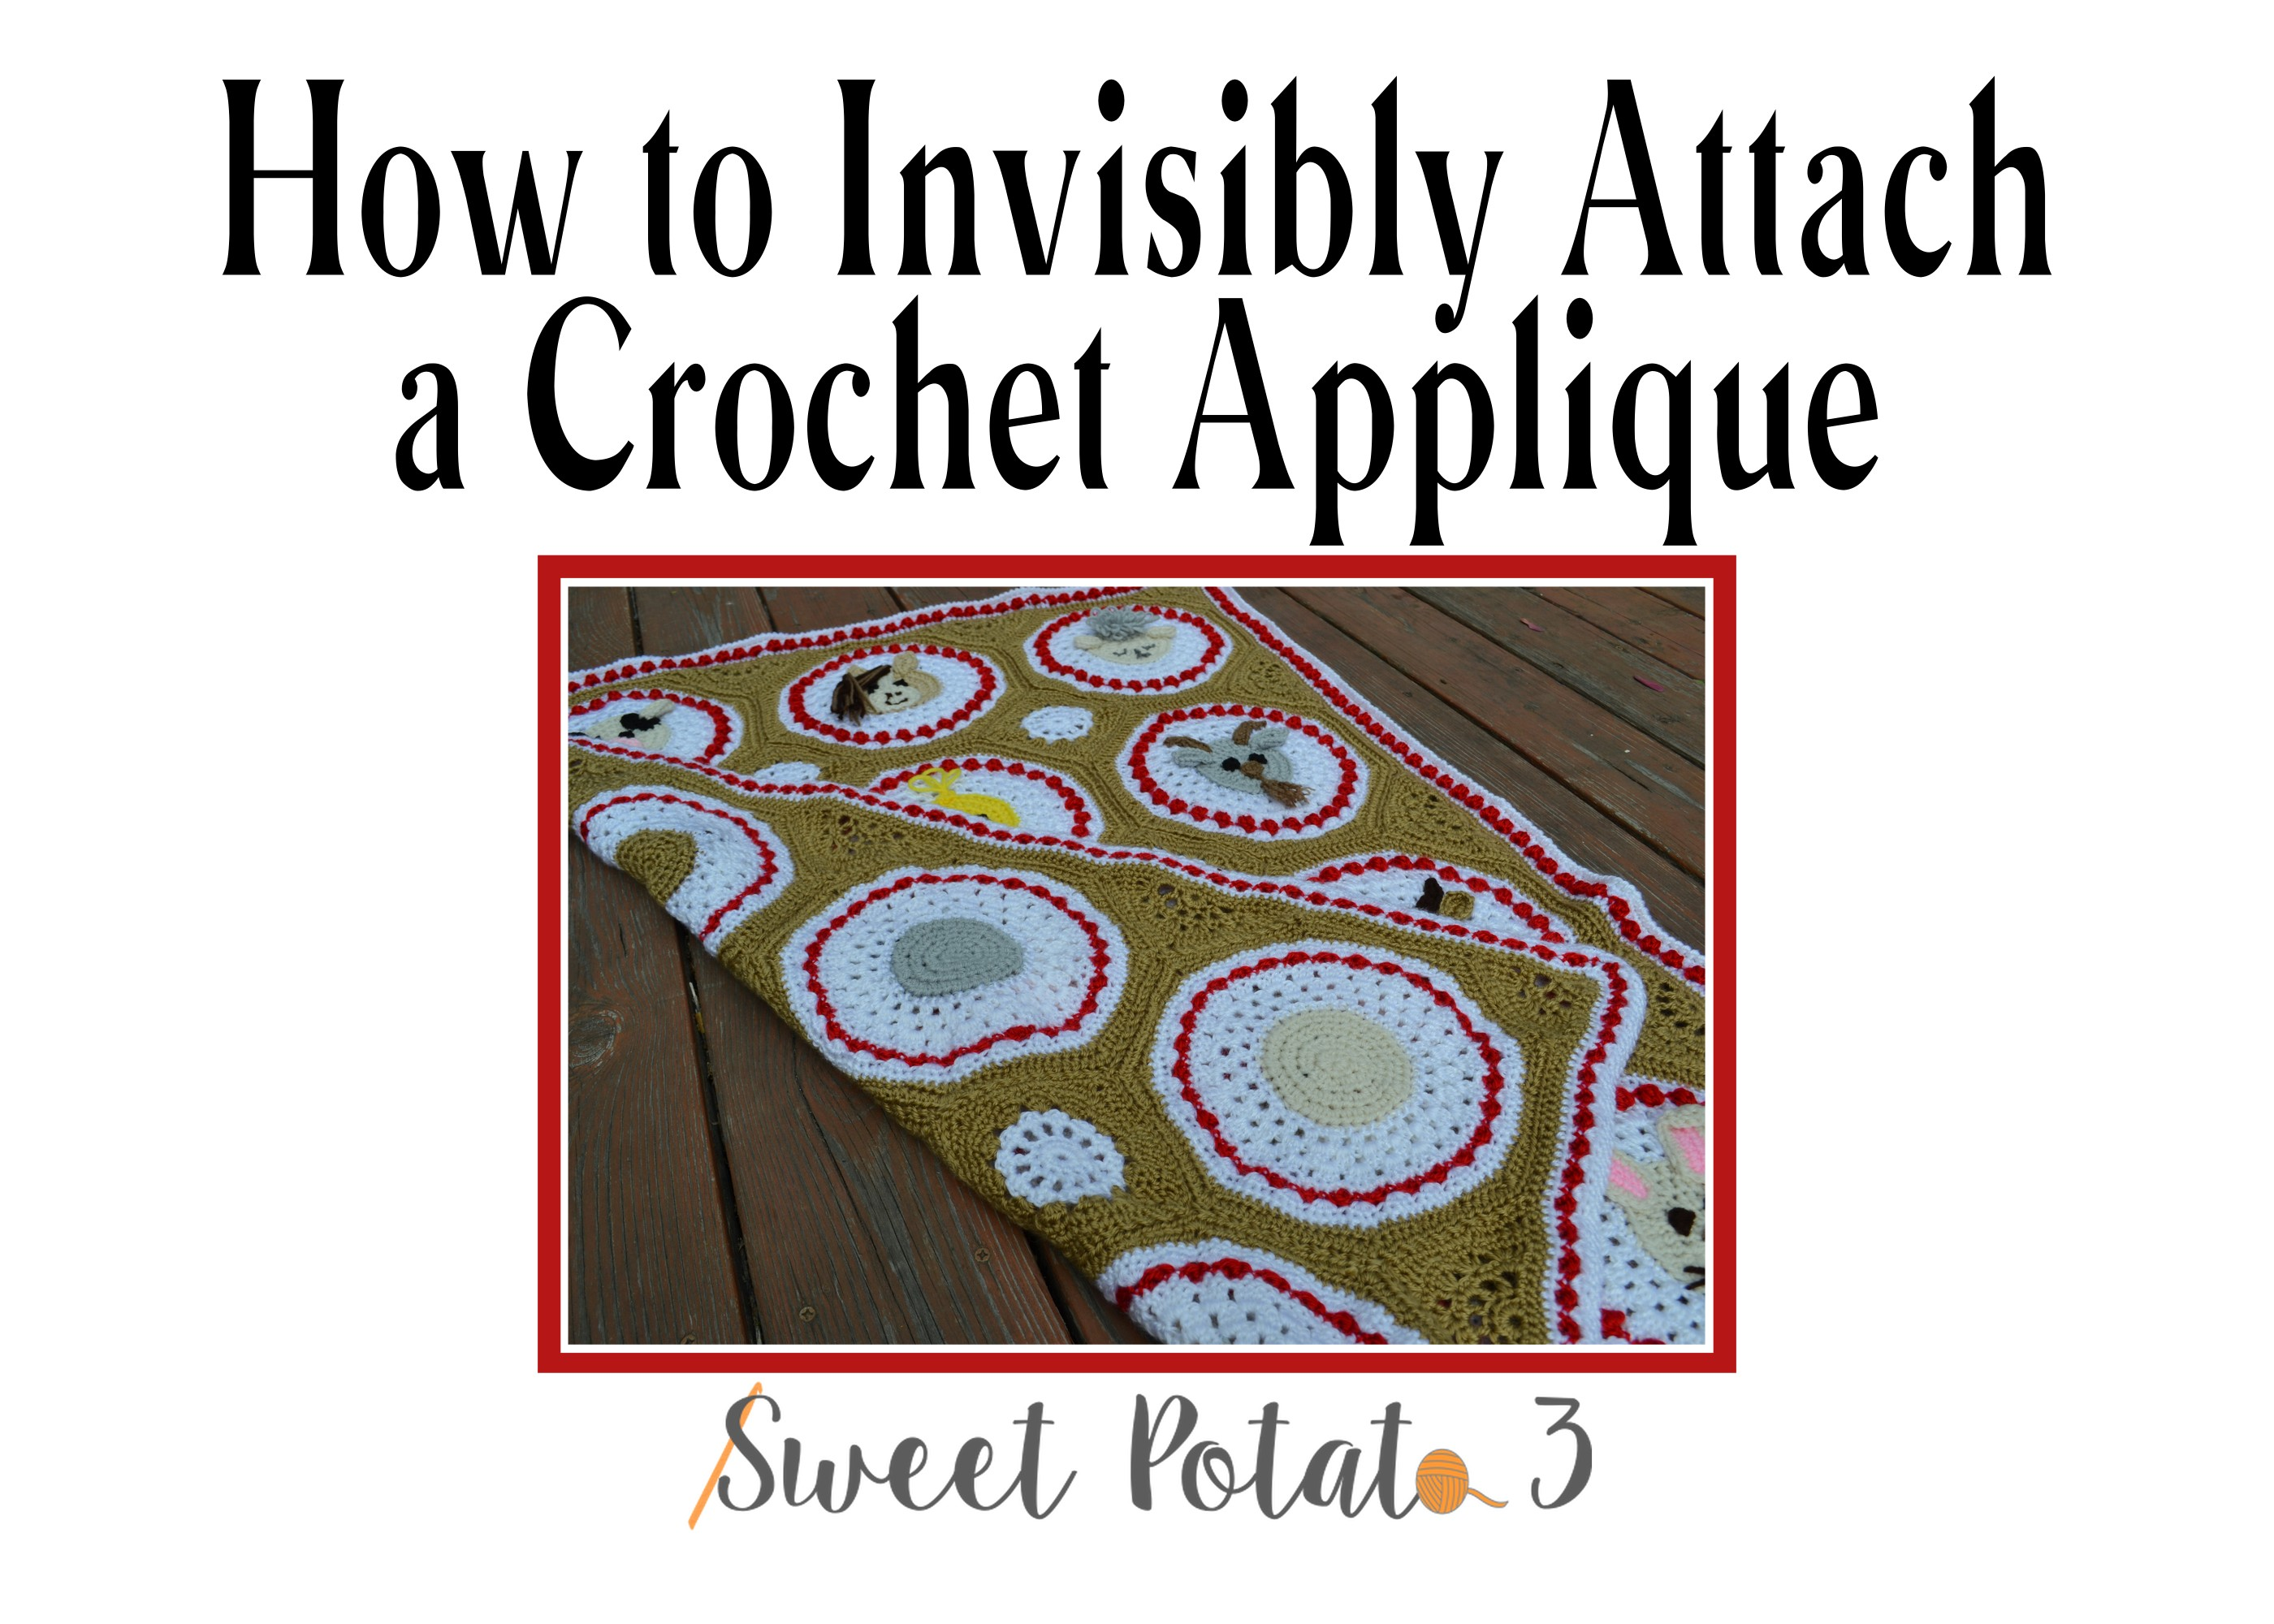 How to Invisibly Attach a Crochet Applique